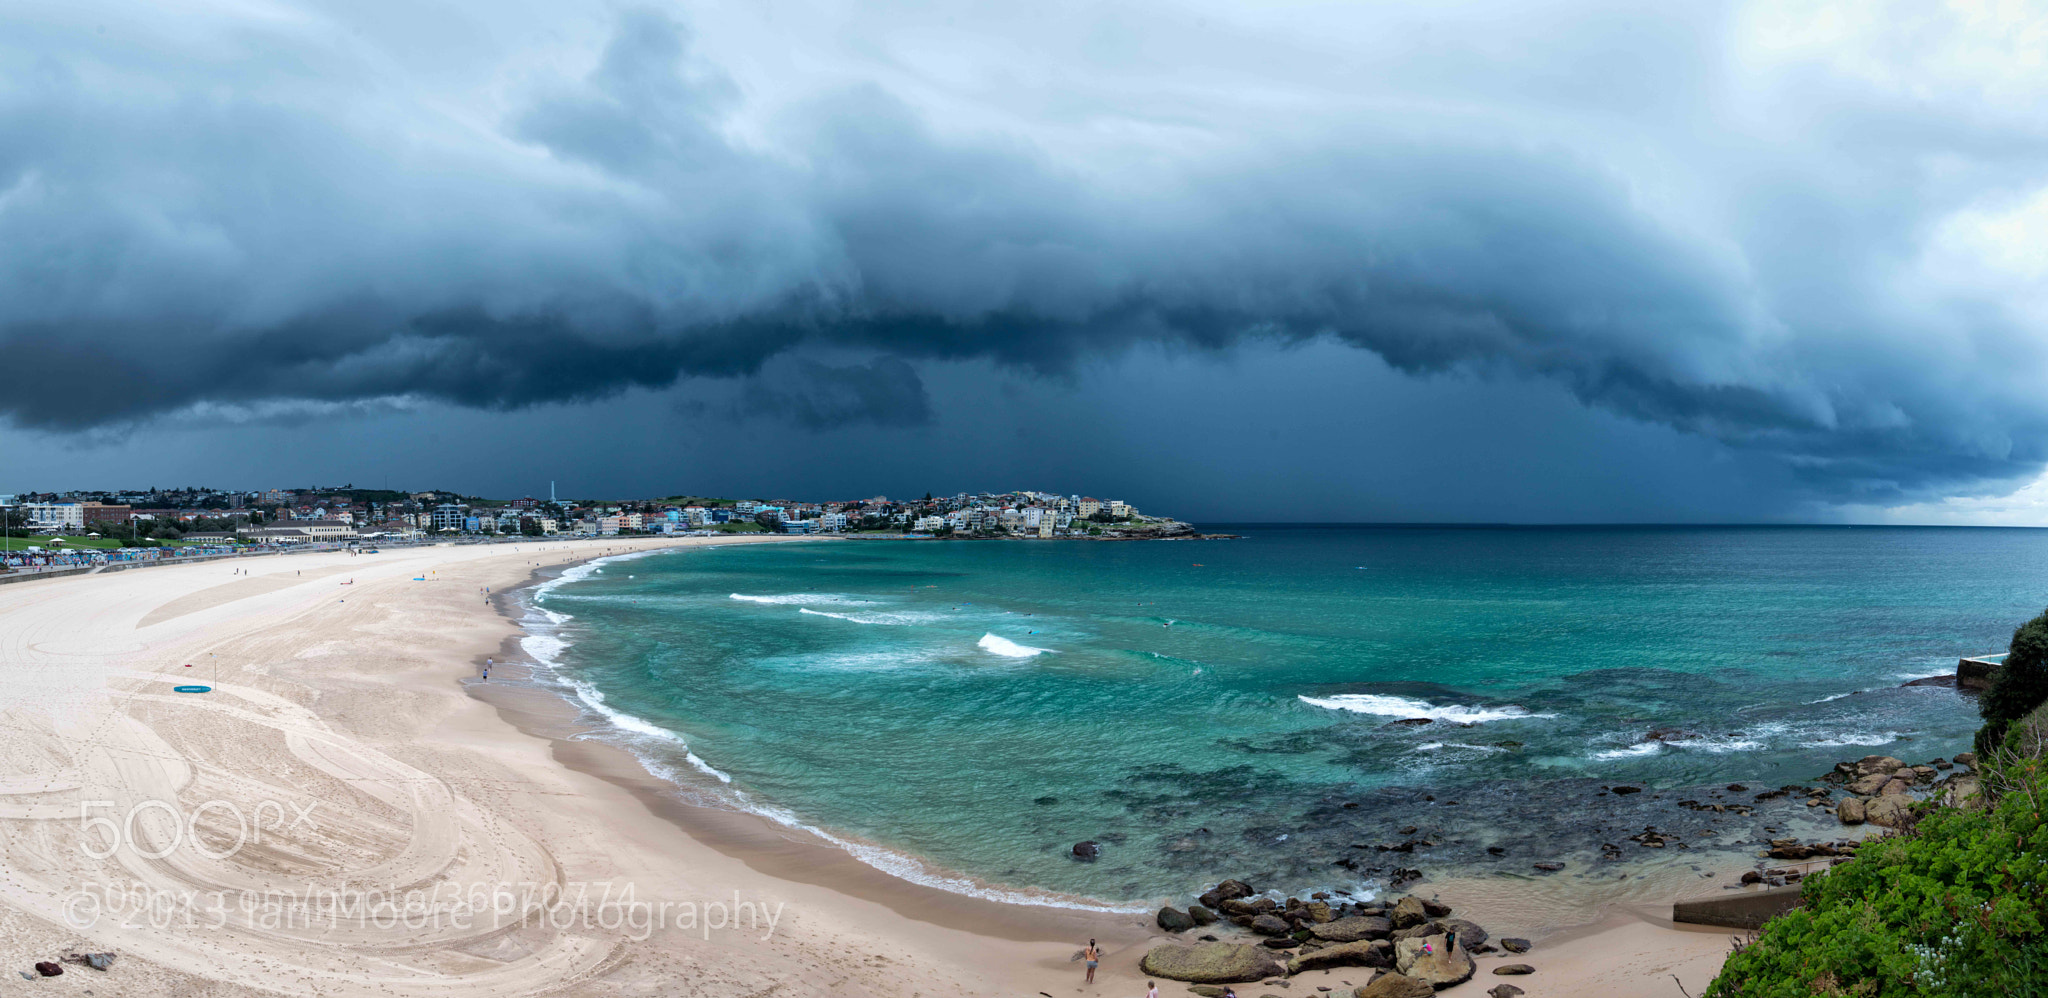 Photograph Storm over Bondi by Ian Moore on 500px